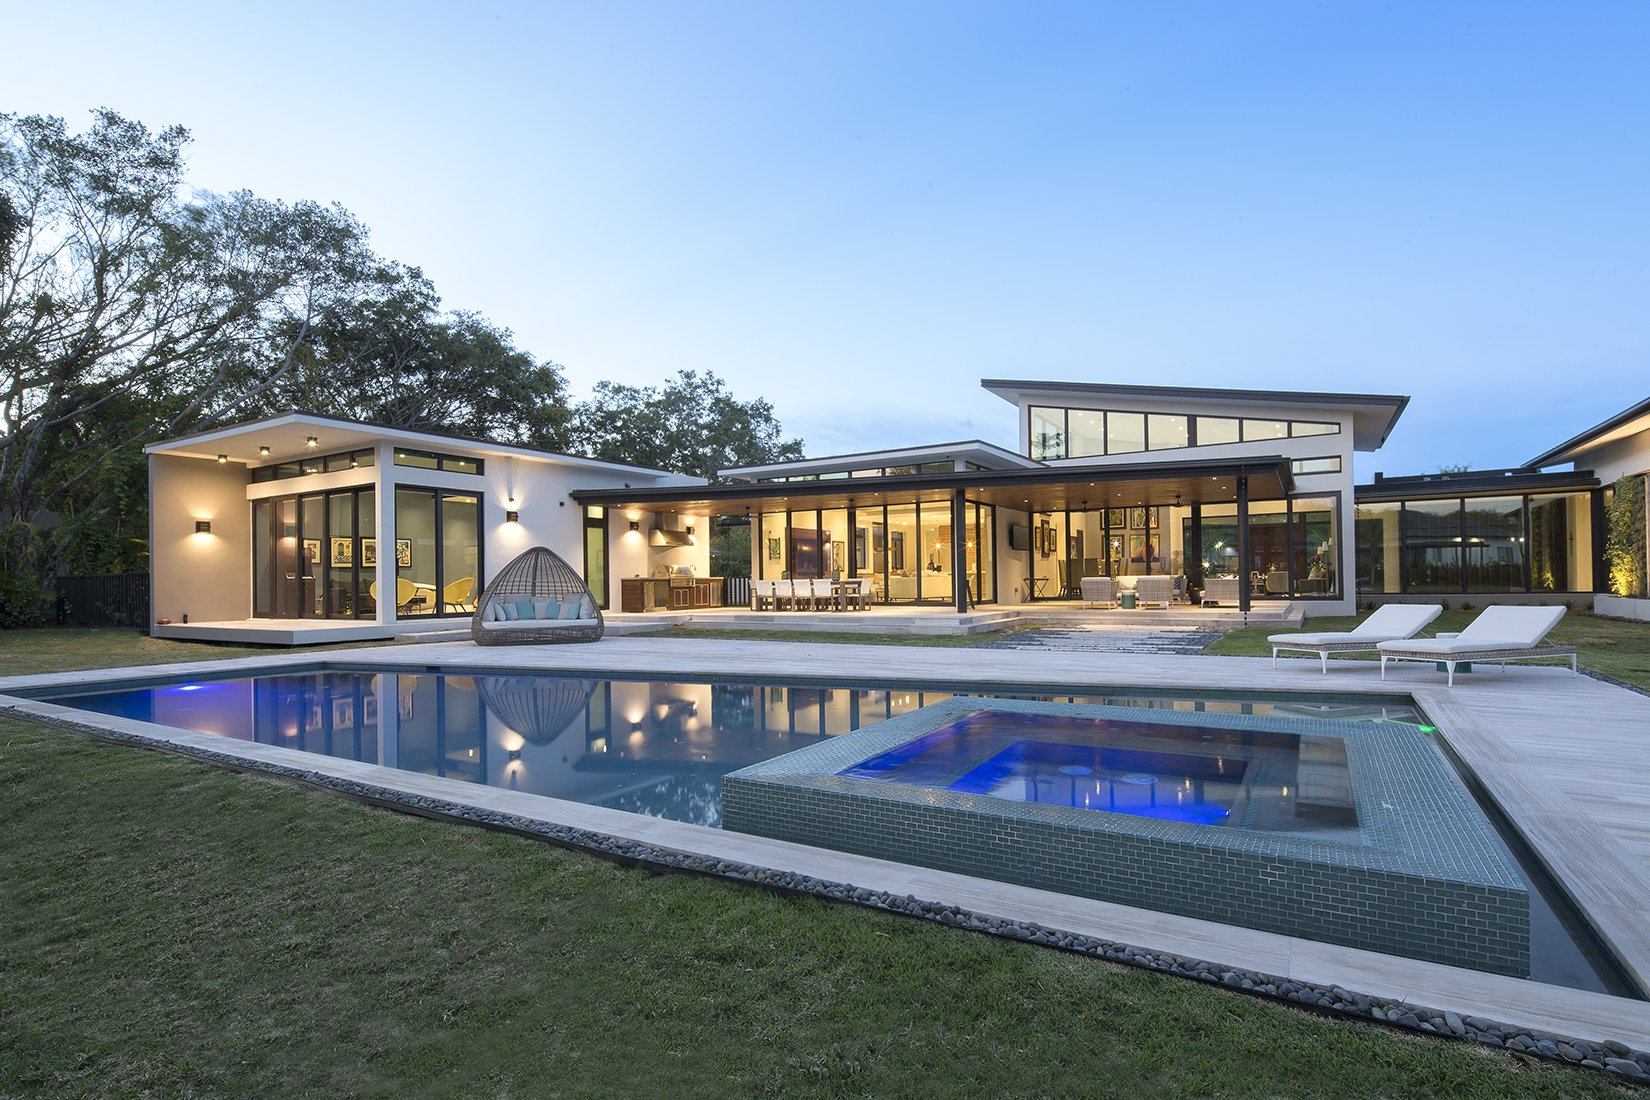 Terrace View Exterior Architecture project in Pinecrest, Florida